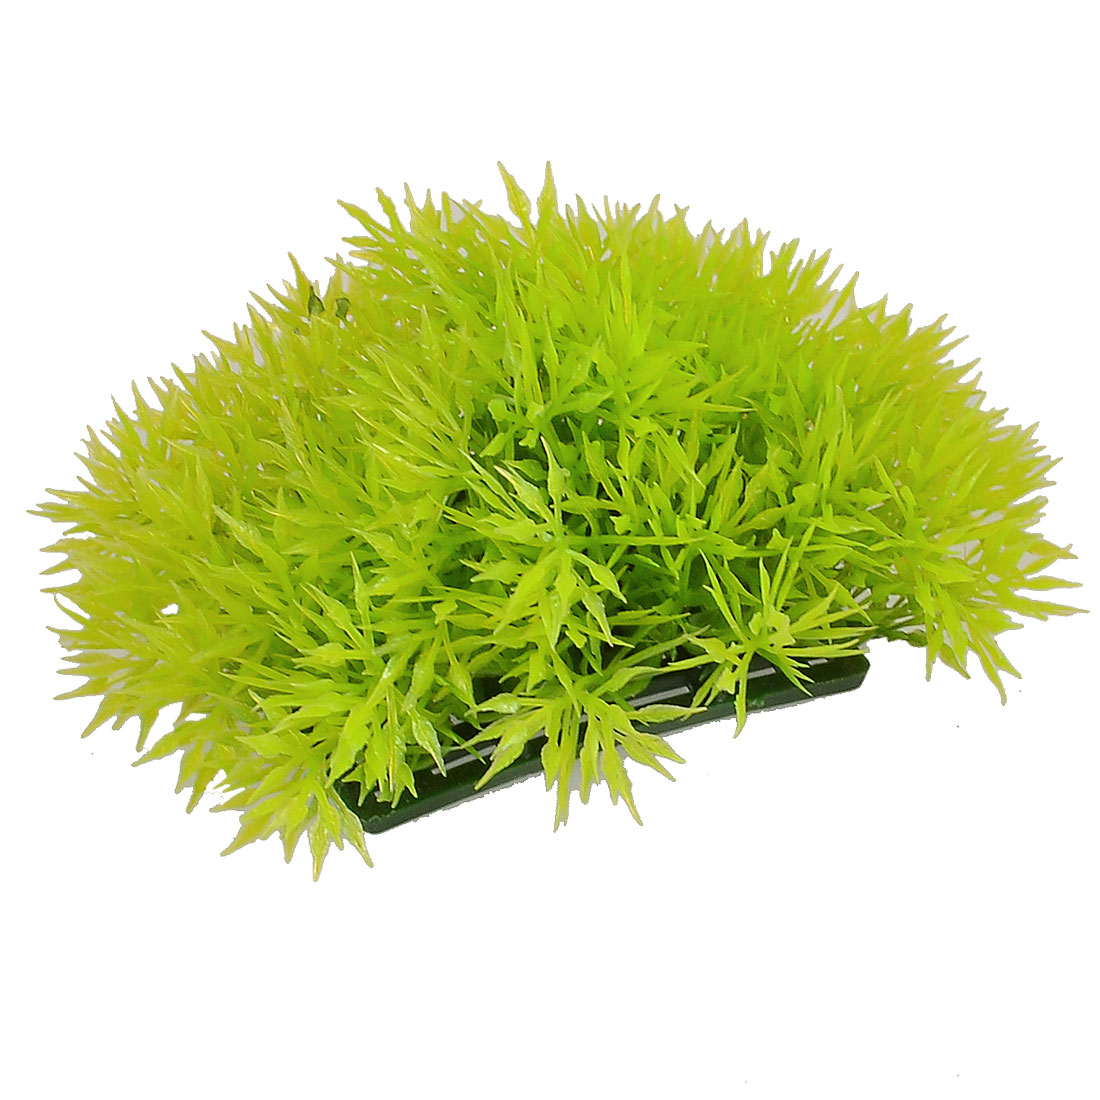 Fish Tank Aquarium Yellowgreen Plastic Artificial Grass Plant 9cmx7cm